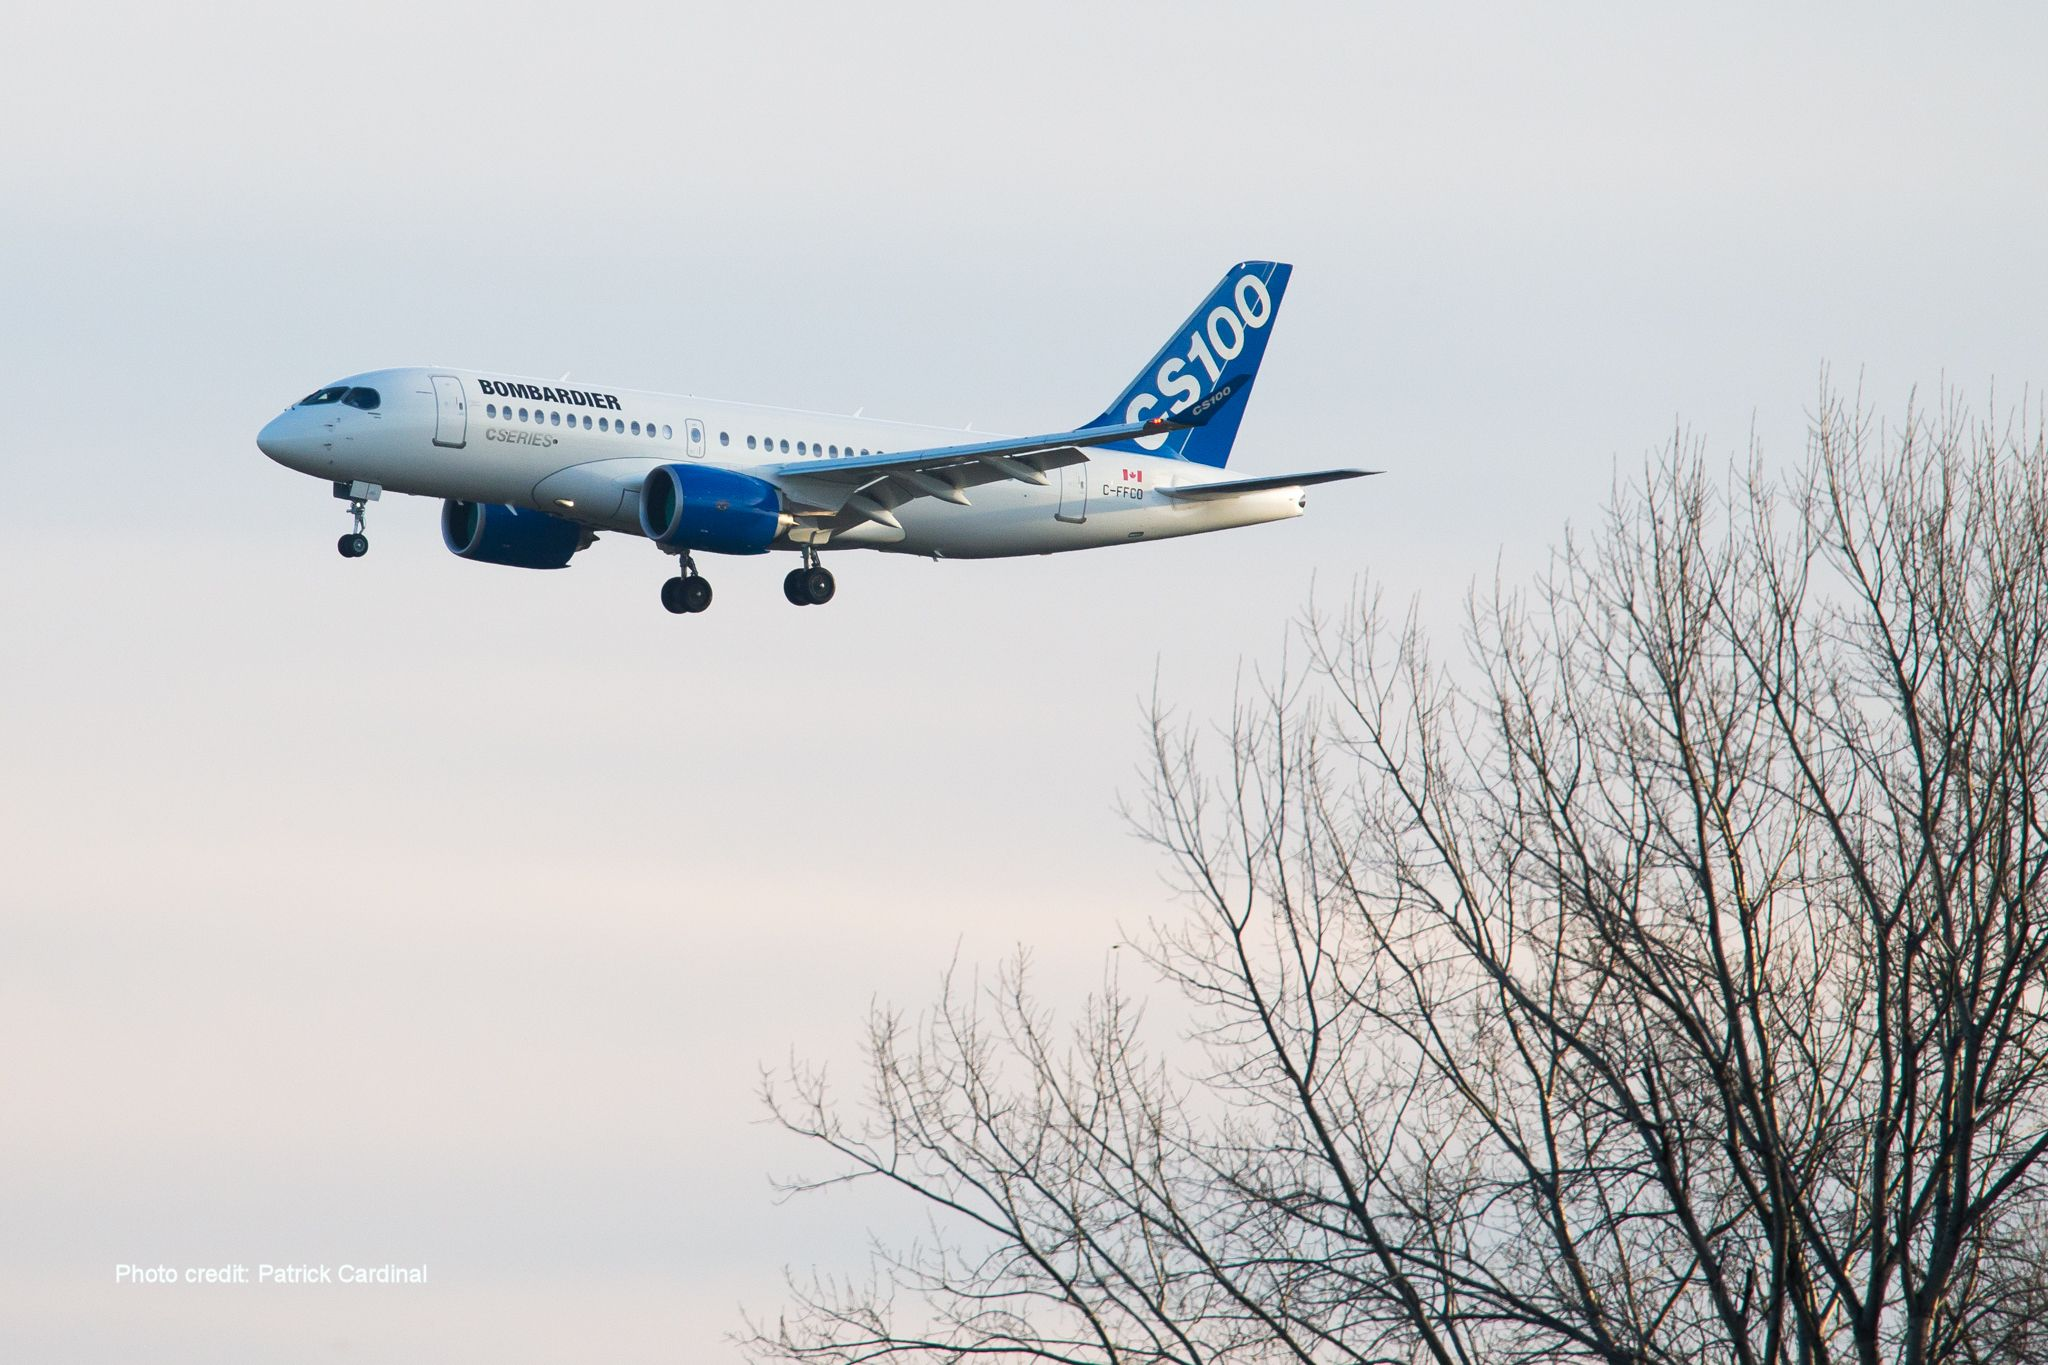 CS100 - Images fournies gracieusement par Bombardier Inc.